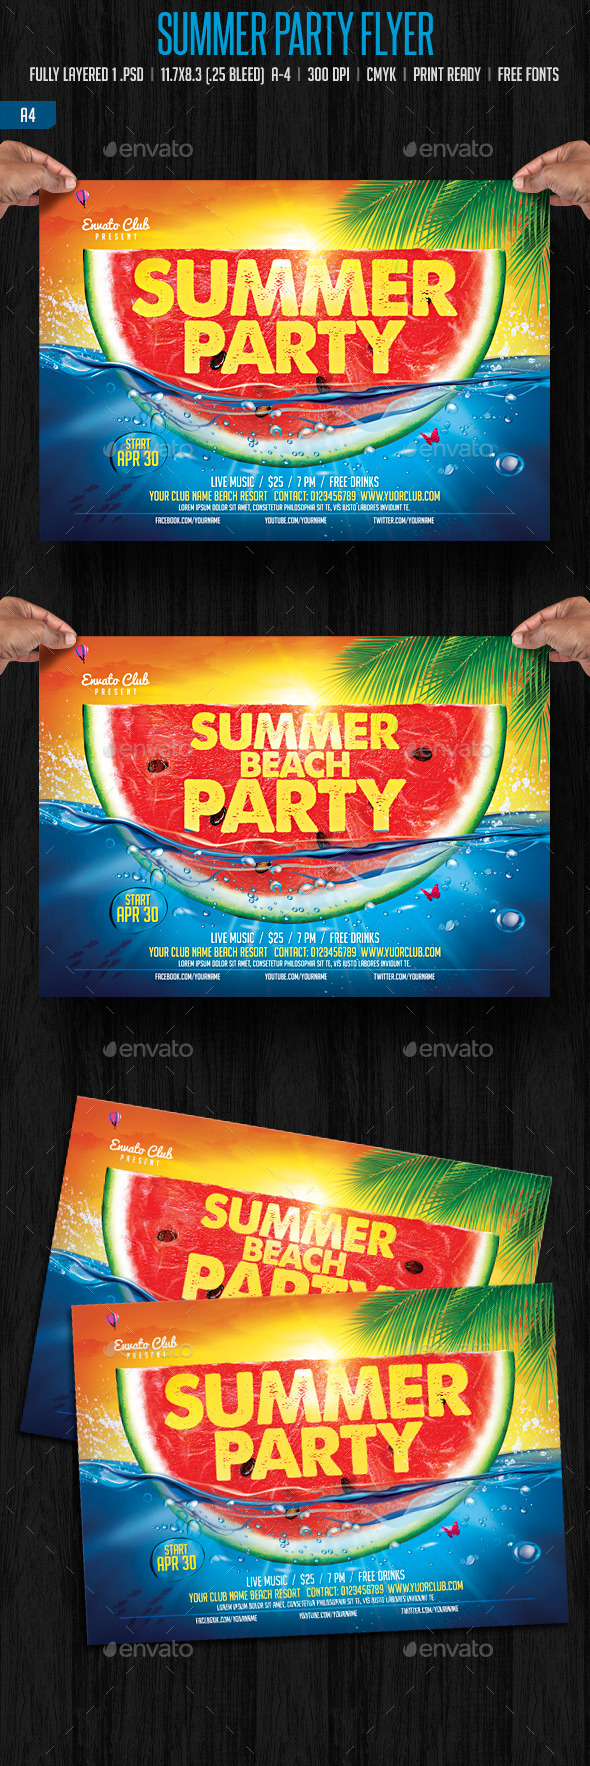 GraphicRiver Summer Party Flyer 11050381